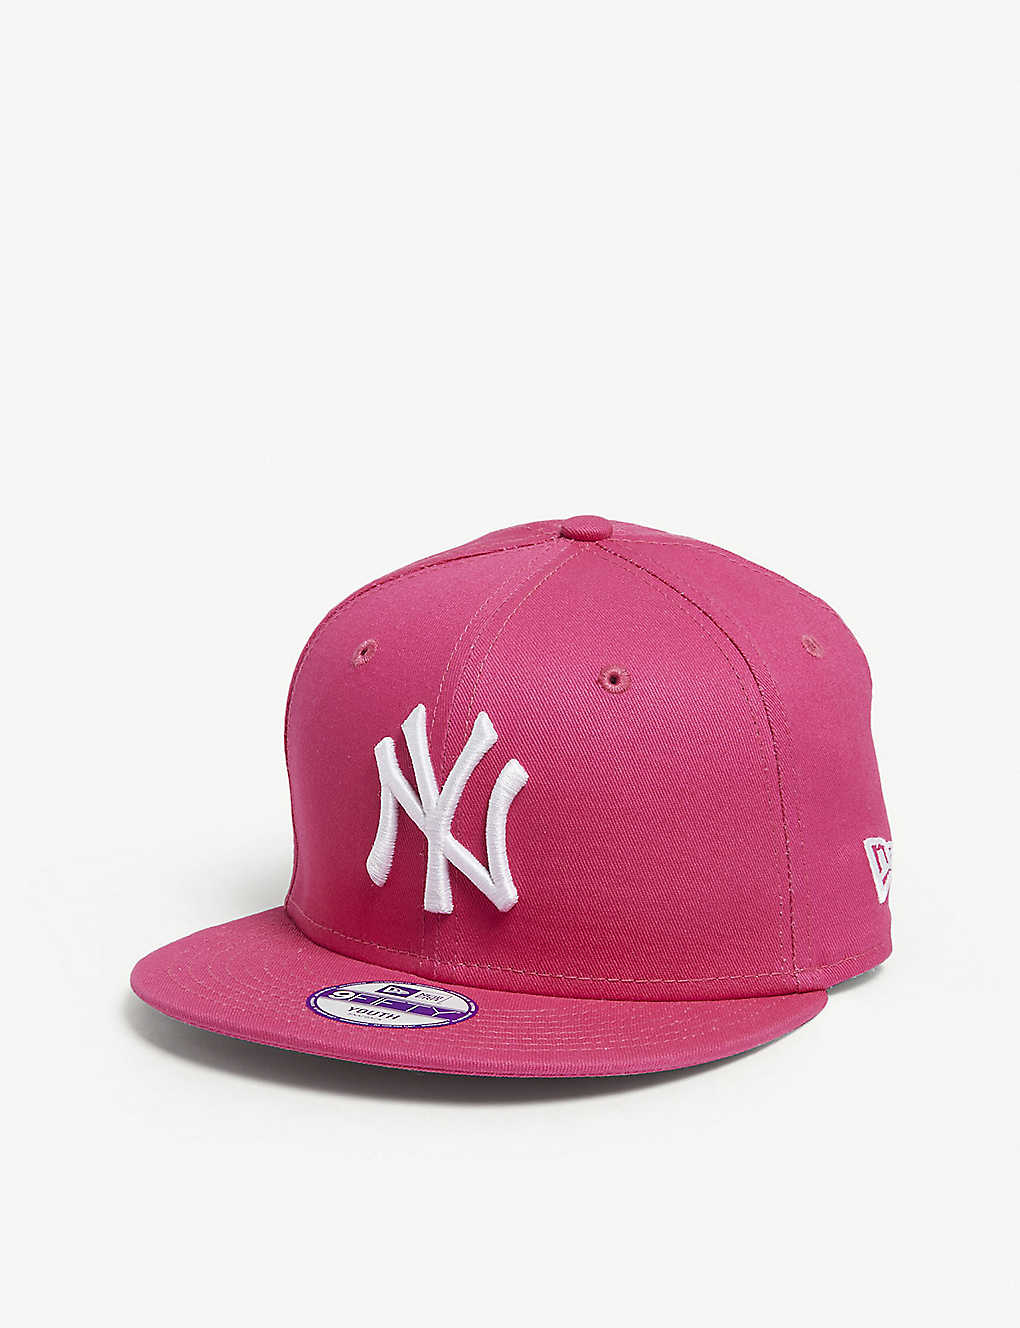 0457f78c0b484 9FIFTY New York Yankees snapback cap - Pinkwhite ...